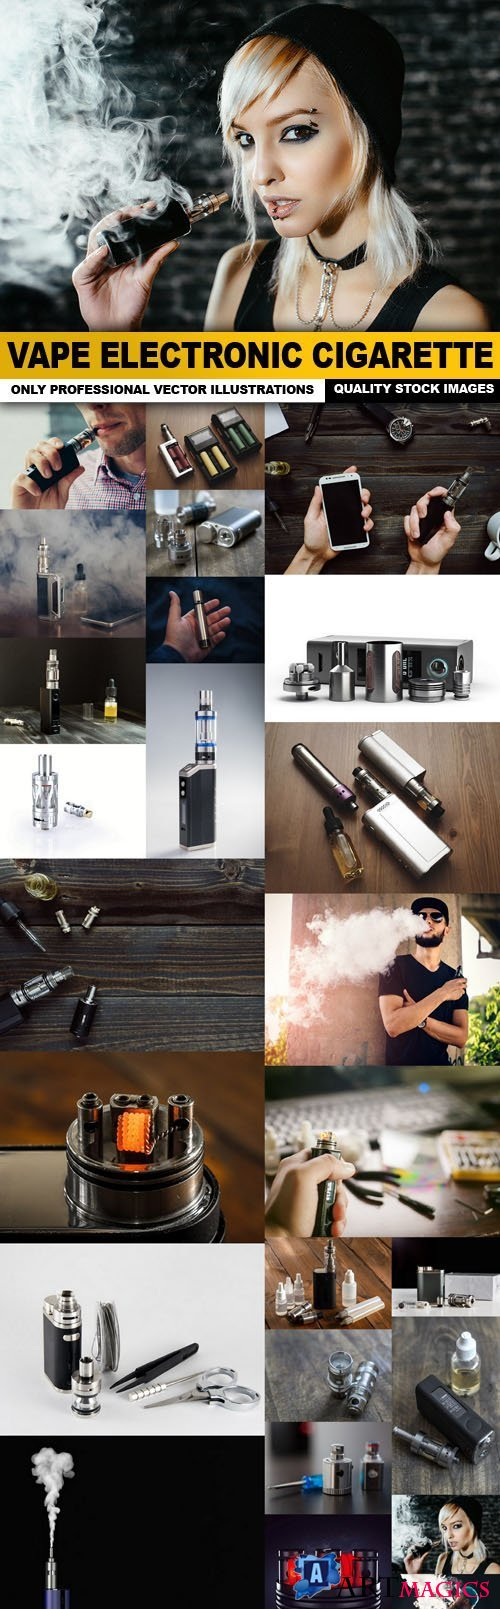 Vape Electronic Cigarette - 25 HQ Images